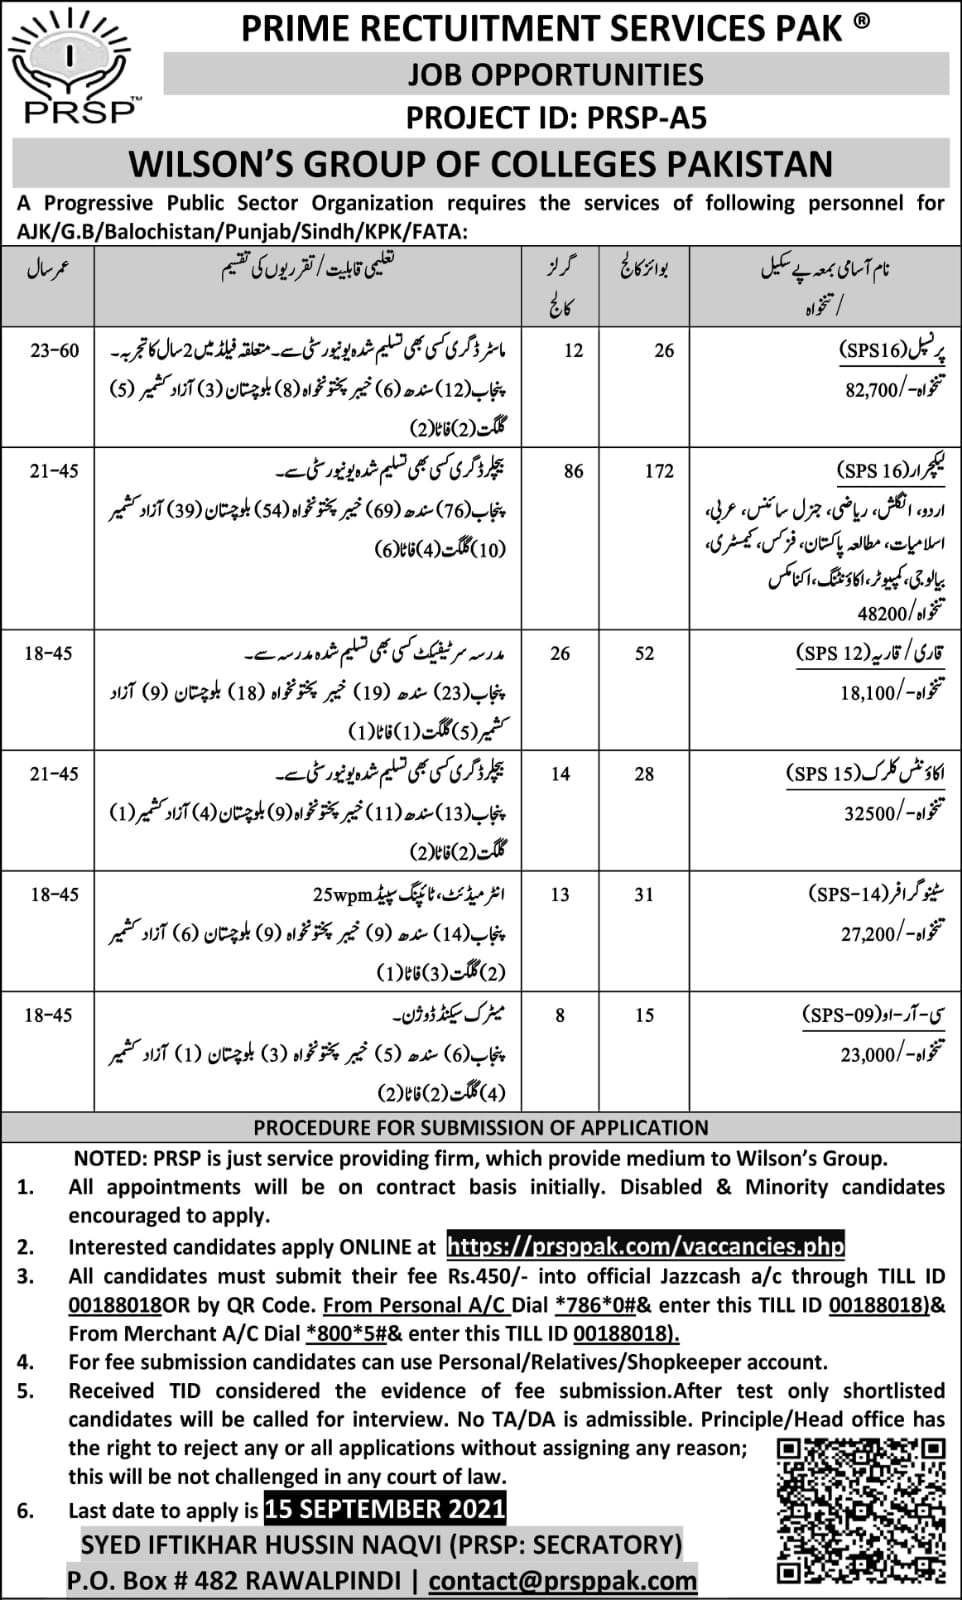 Latest Government jobs in Pakistan Today At Wilson Group of Colleges Via Prime Recruitment Services Pakistan PRSP